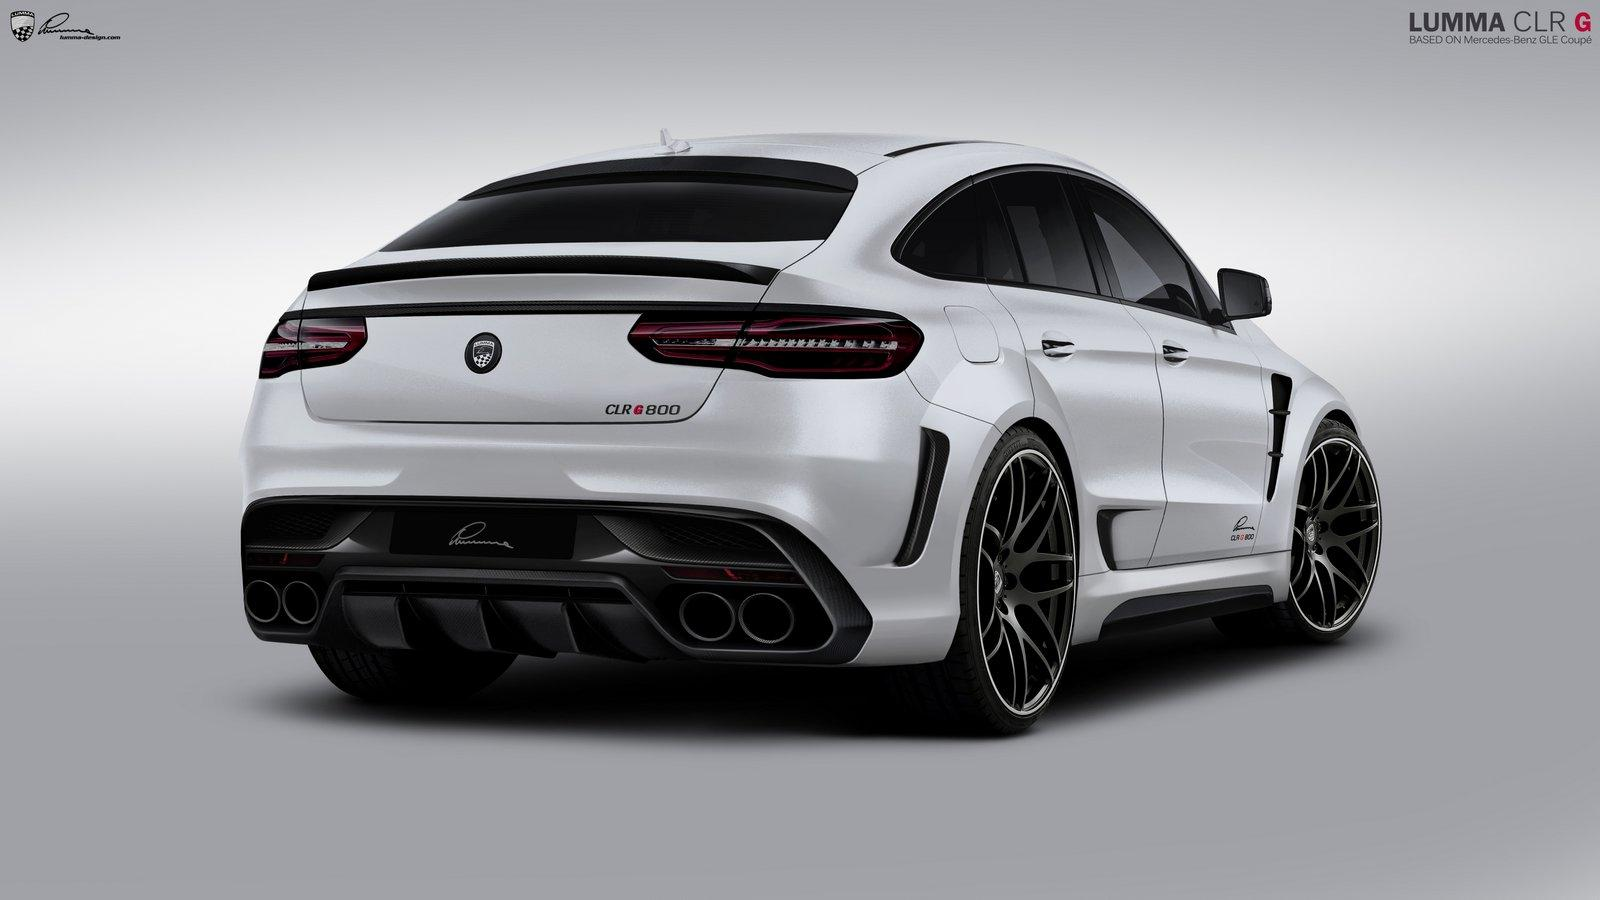 Lumma Clr G 800 Is The Lairiest Looking Gle63 Coupe